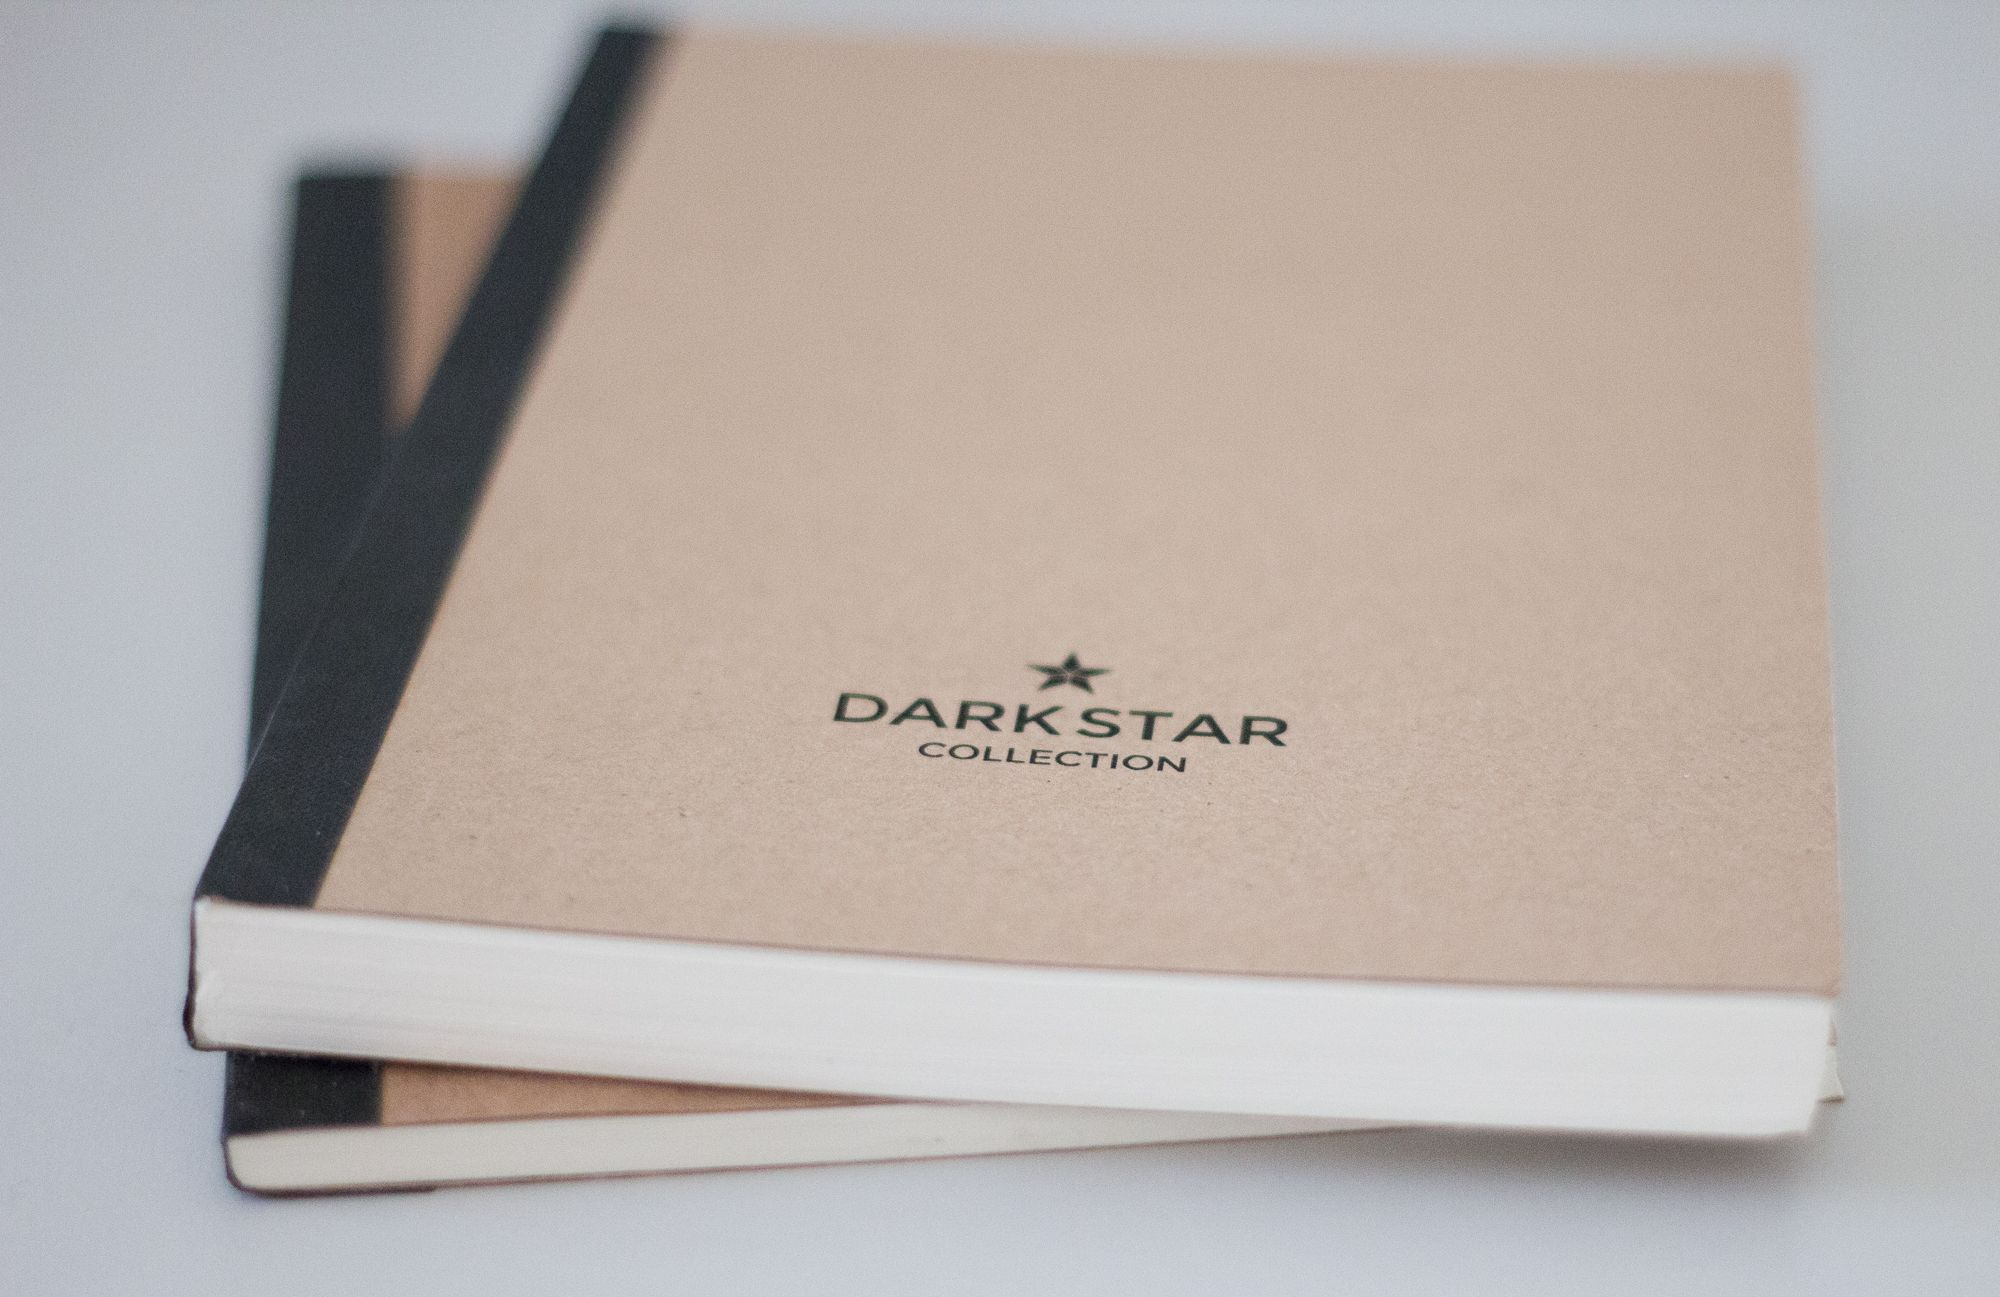 notebook review darkstar collection creativepineapple net  notebook review darkstar collection creativepineapple net review darkstar